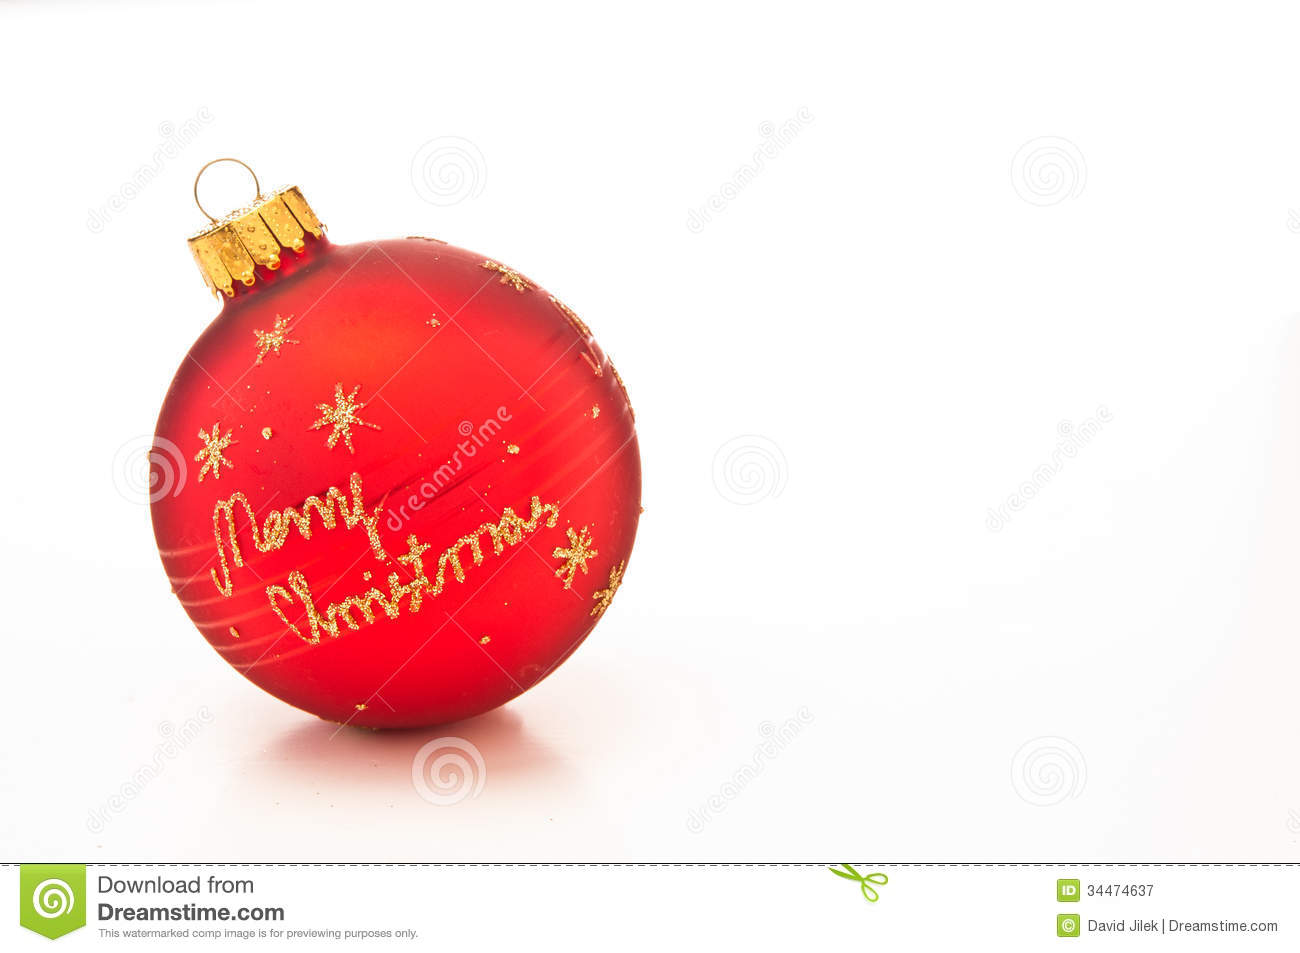 Merry Christmas bauble stock image. Image of cheery, glittery - 34474637